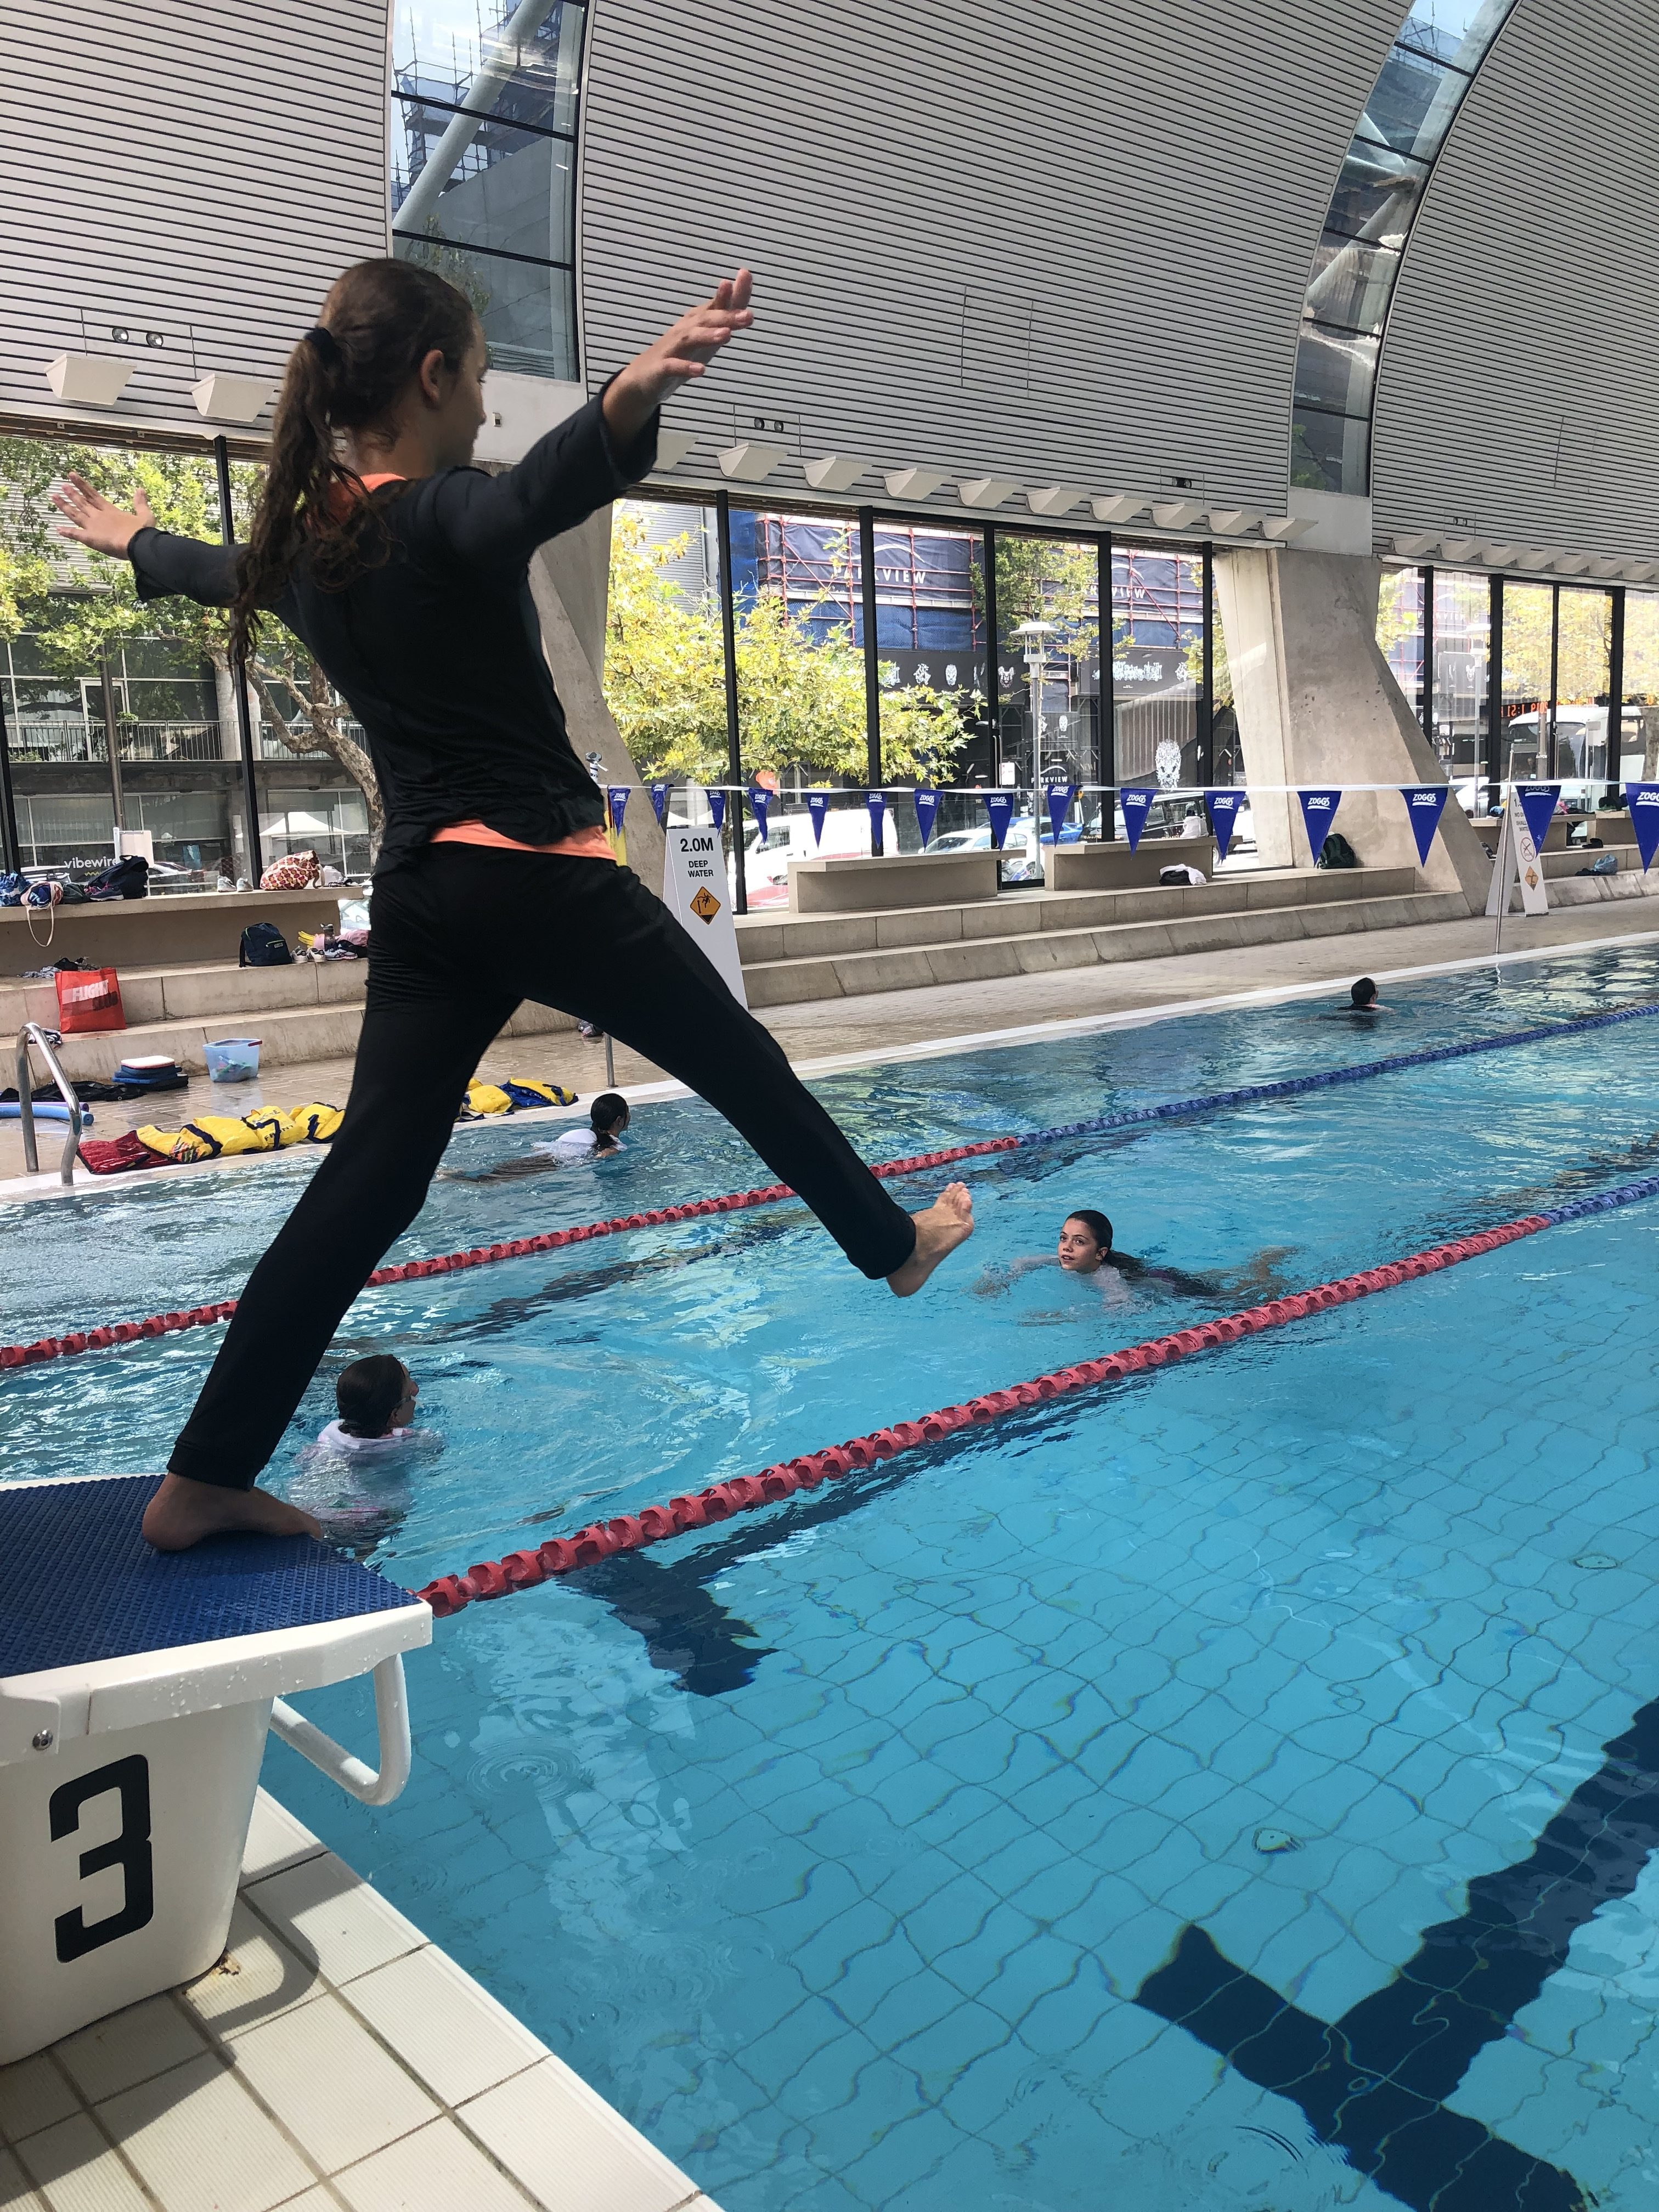 igs-water-safety-skills-group-in-pool-activities-jump